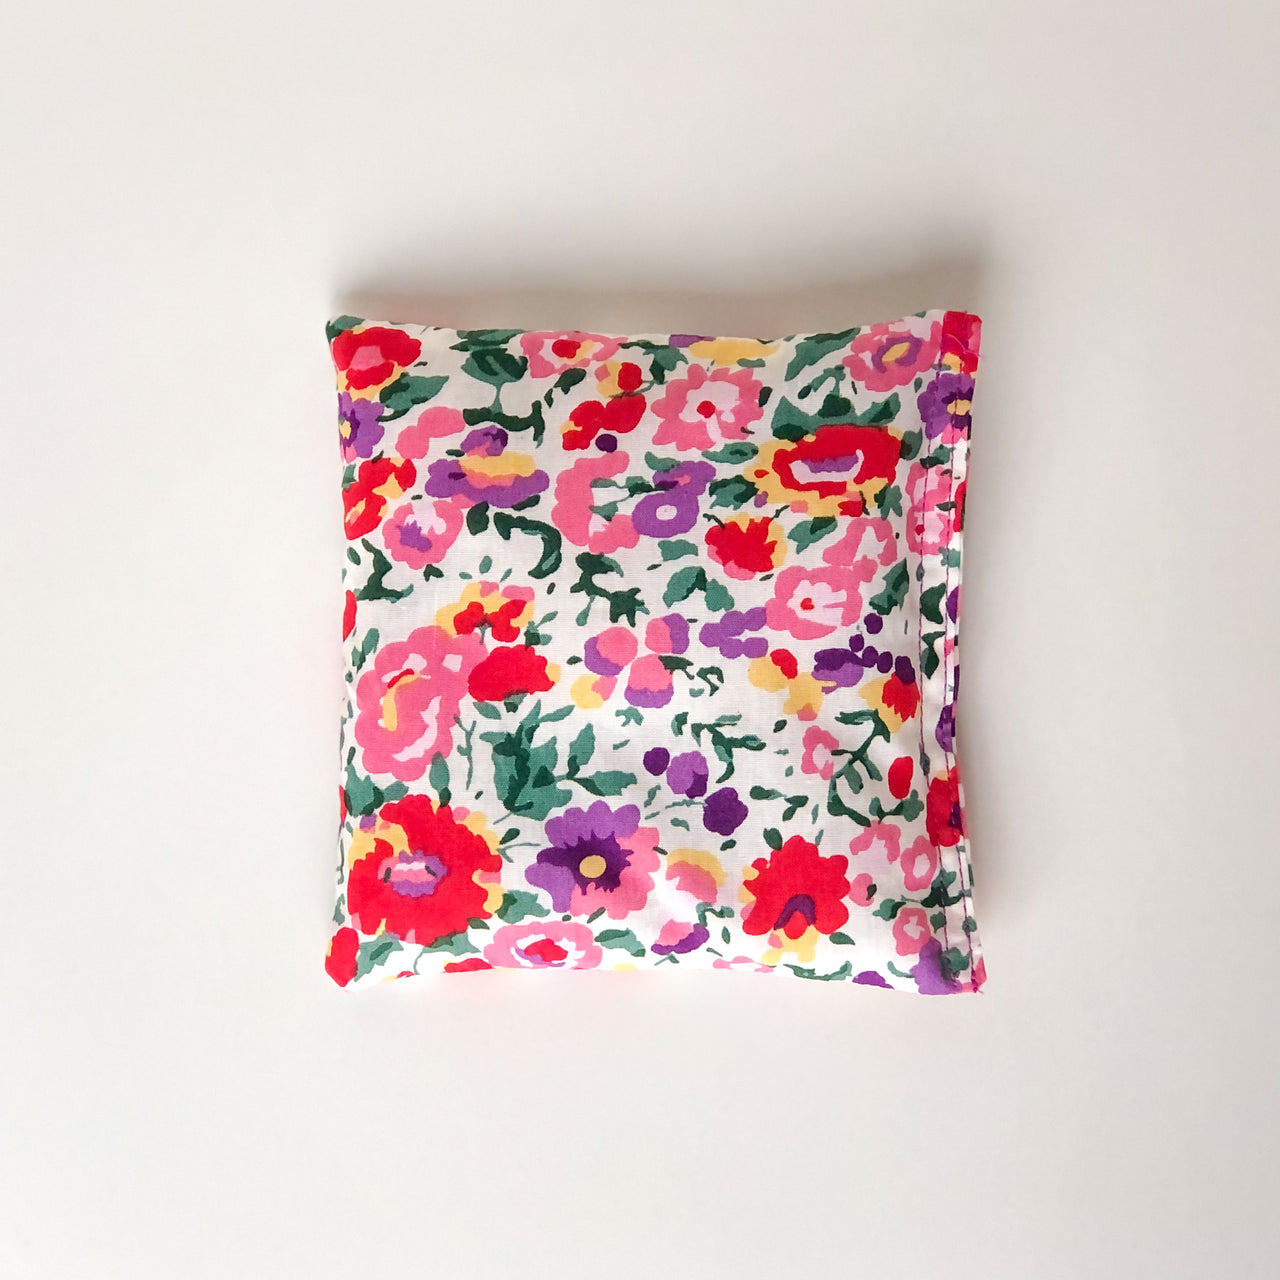 Lavender pillow - floral garden chill